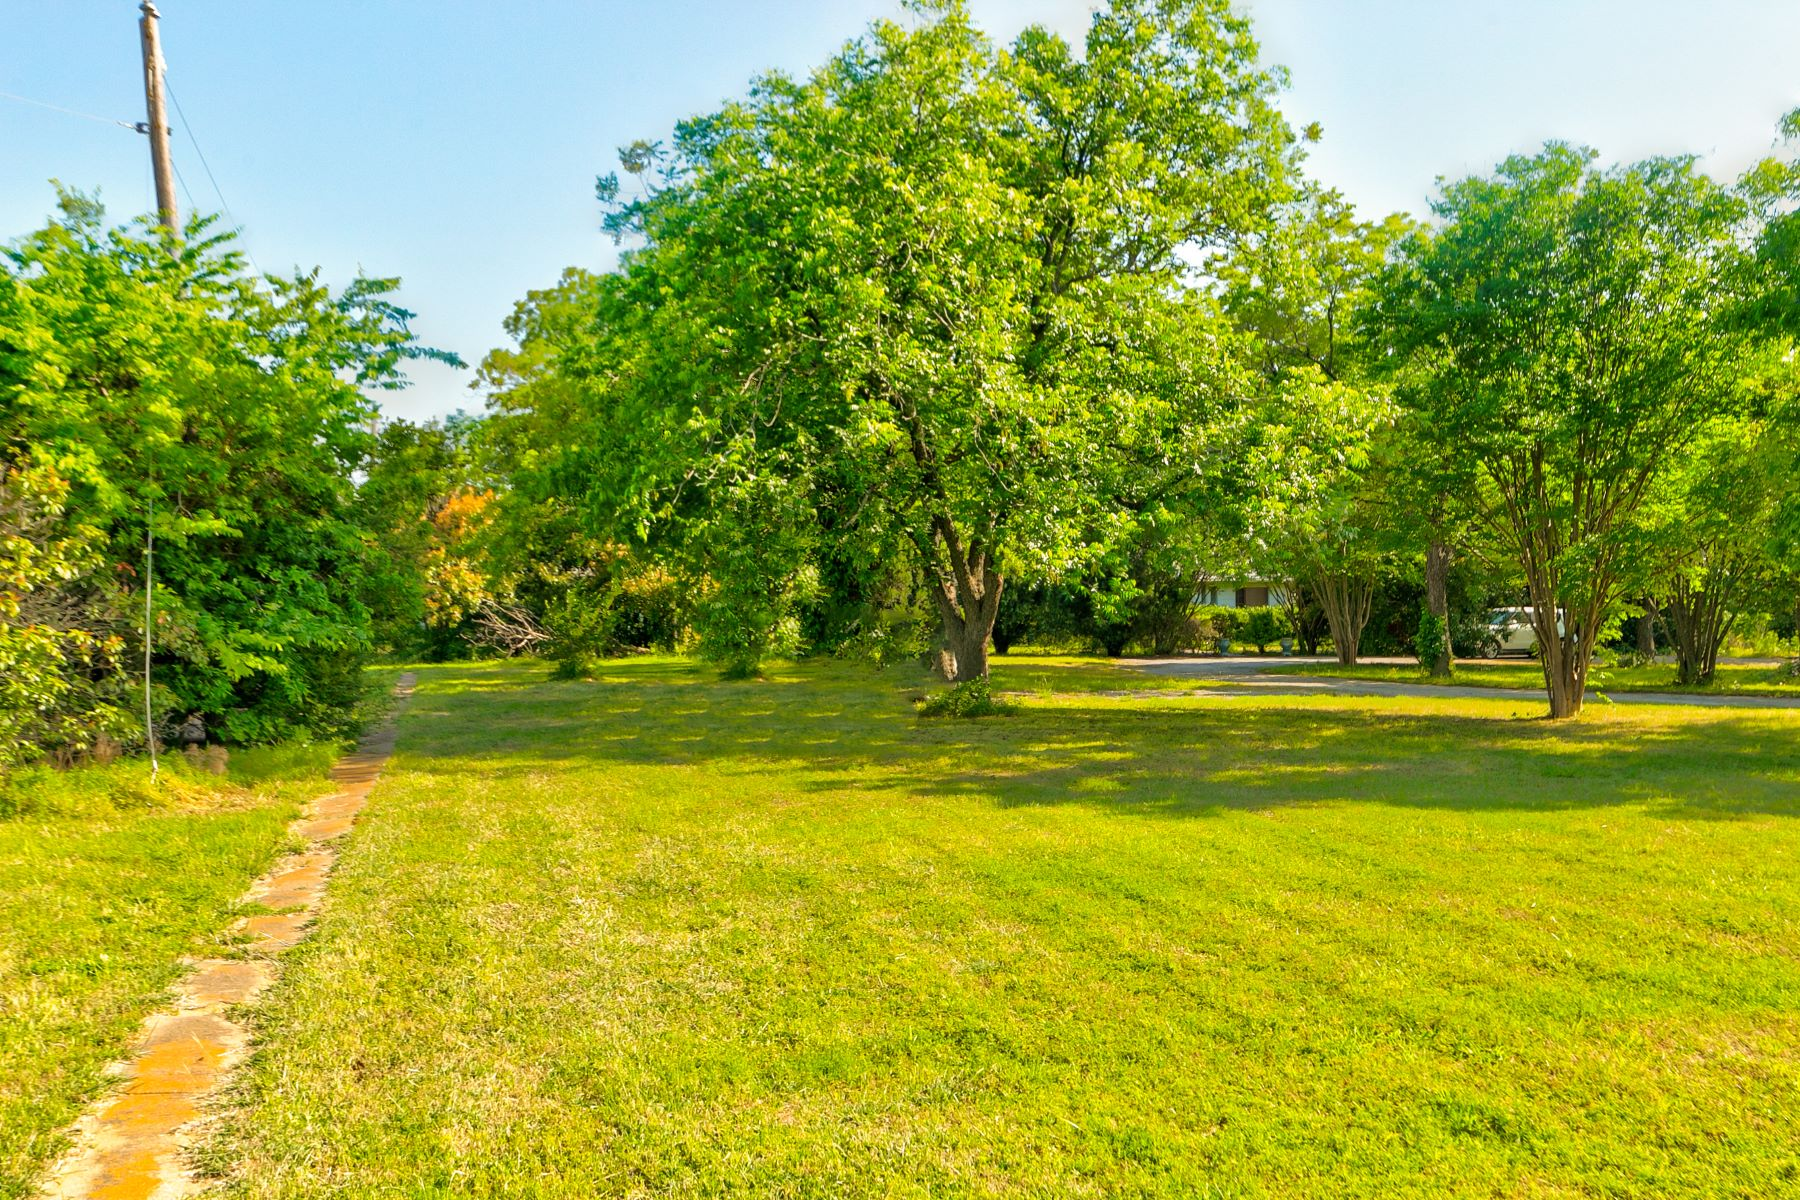 for Sale at 2.85 Acres- Residential or Industrial Zoned Land 2311 Crooked Lane Southlake, Texas 76092 United States